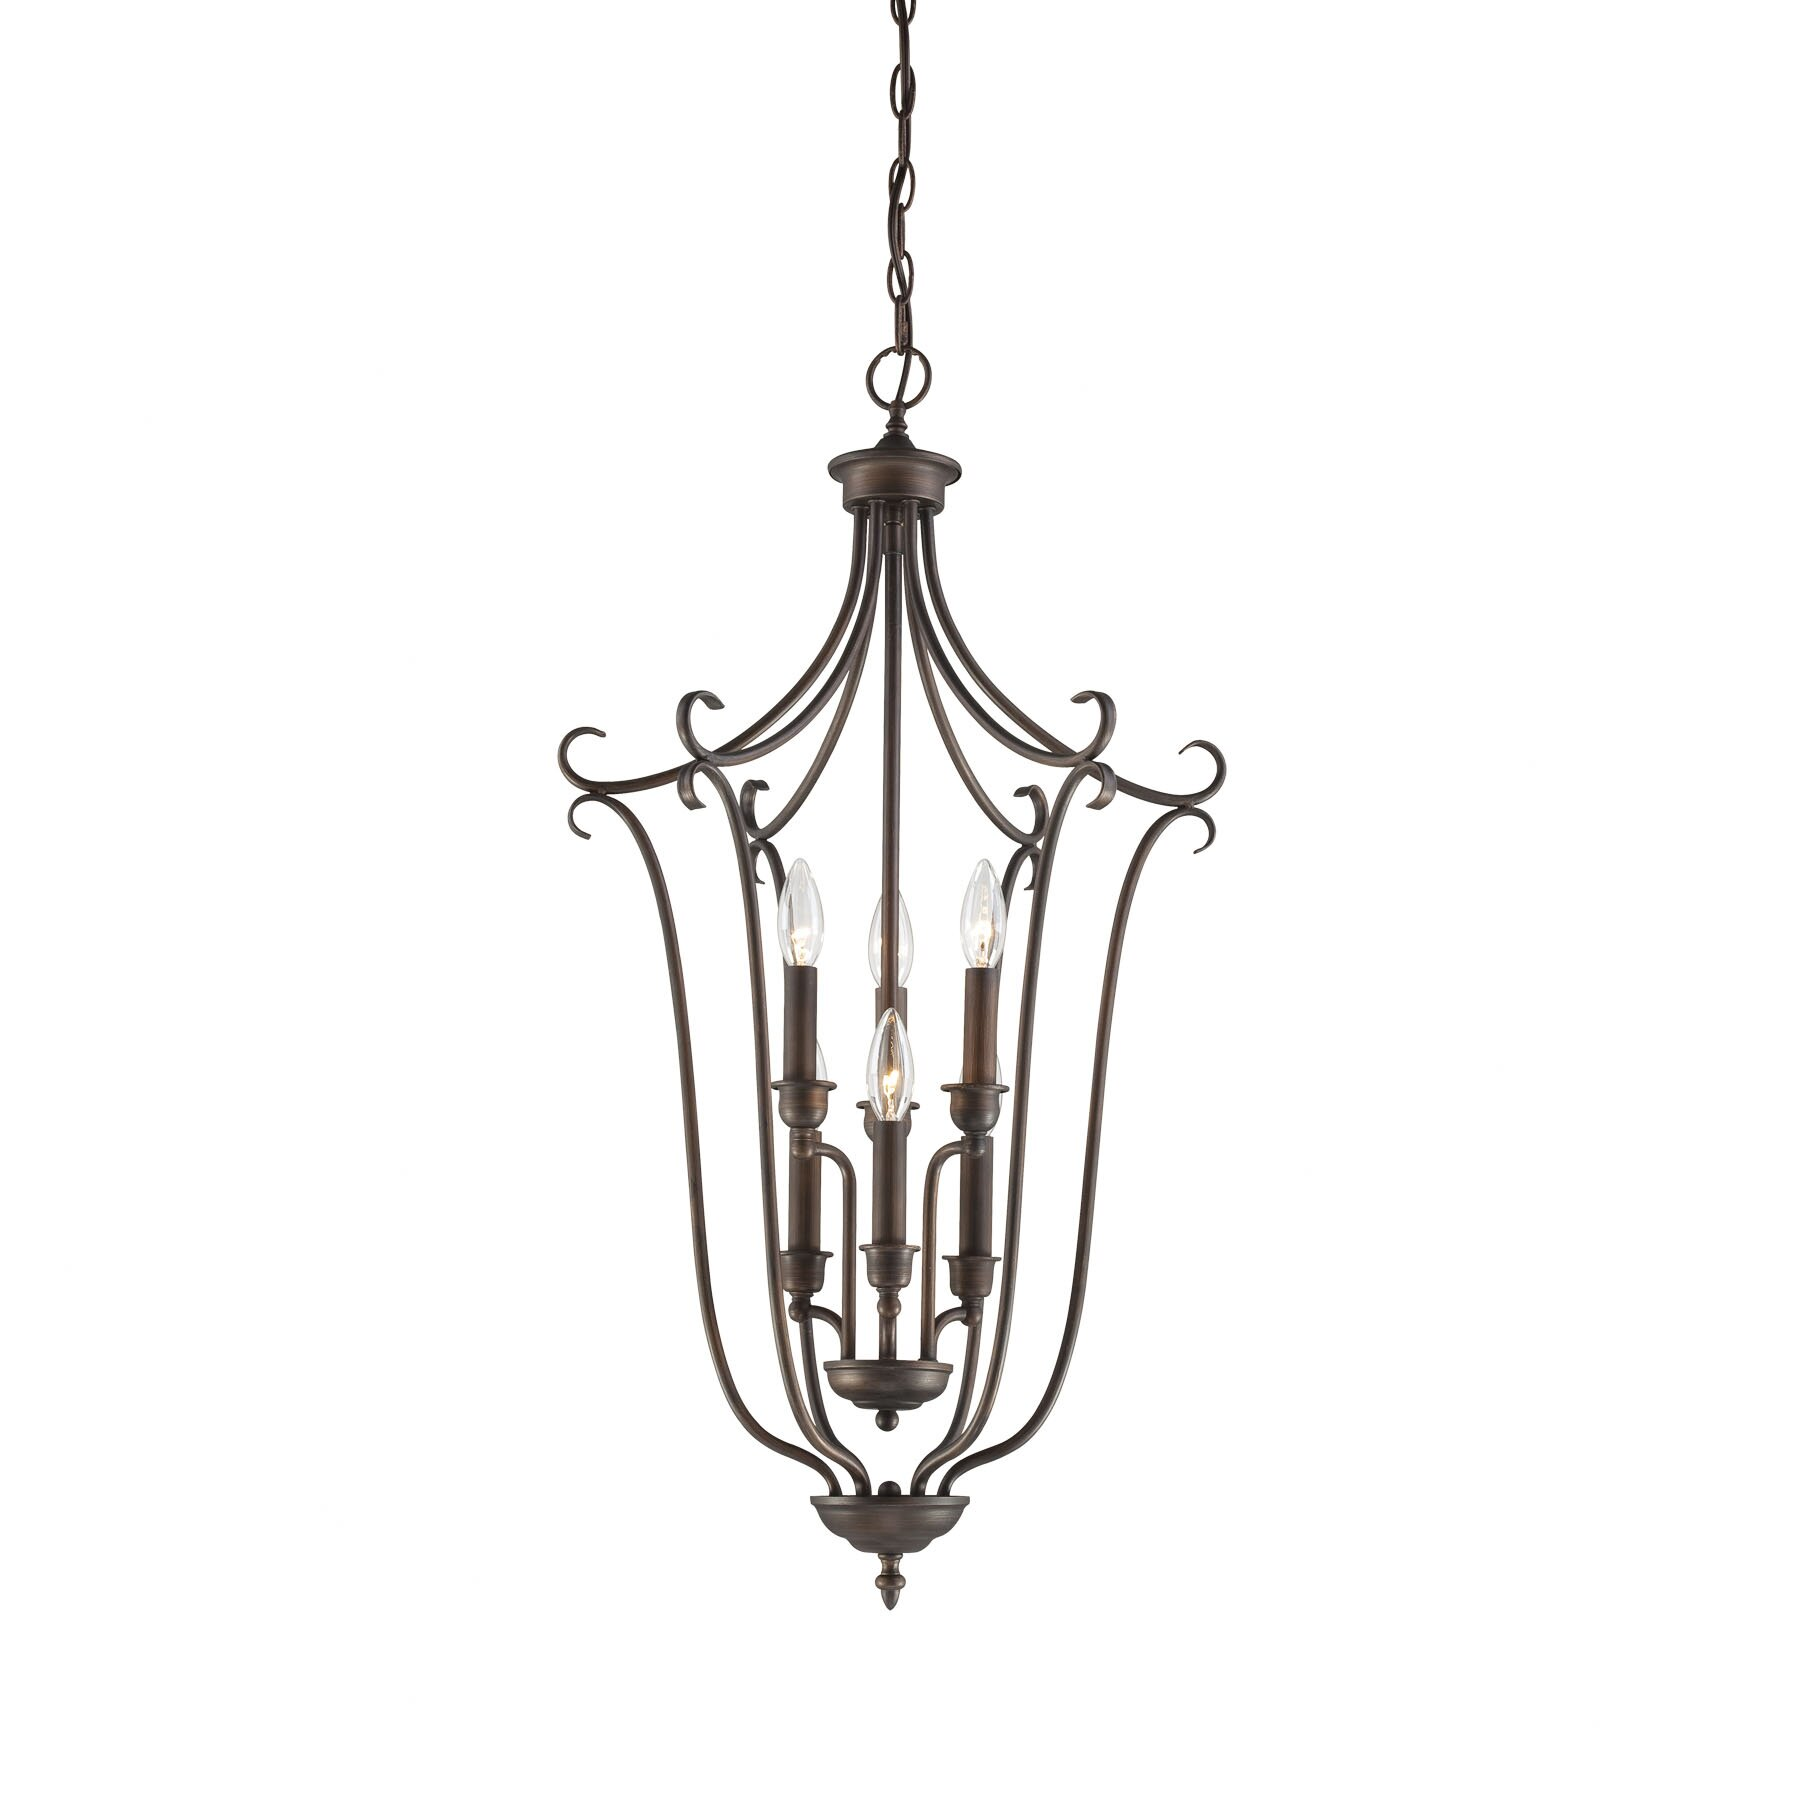 Millennium Lighting Fulton 6 Light Foyer Pendant MNLT1184 on heaters for living room